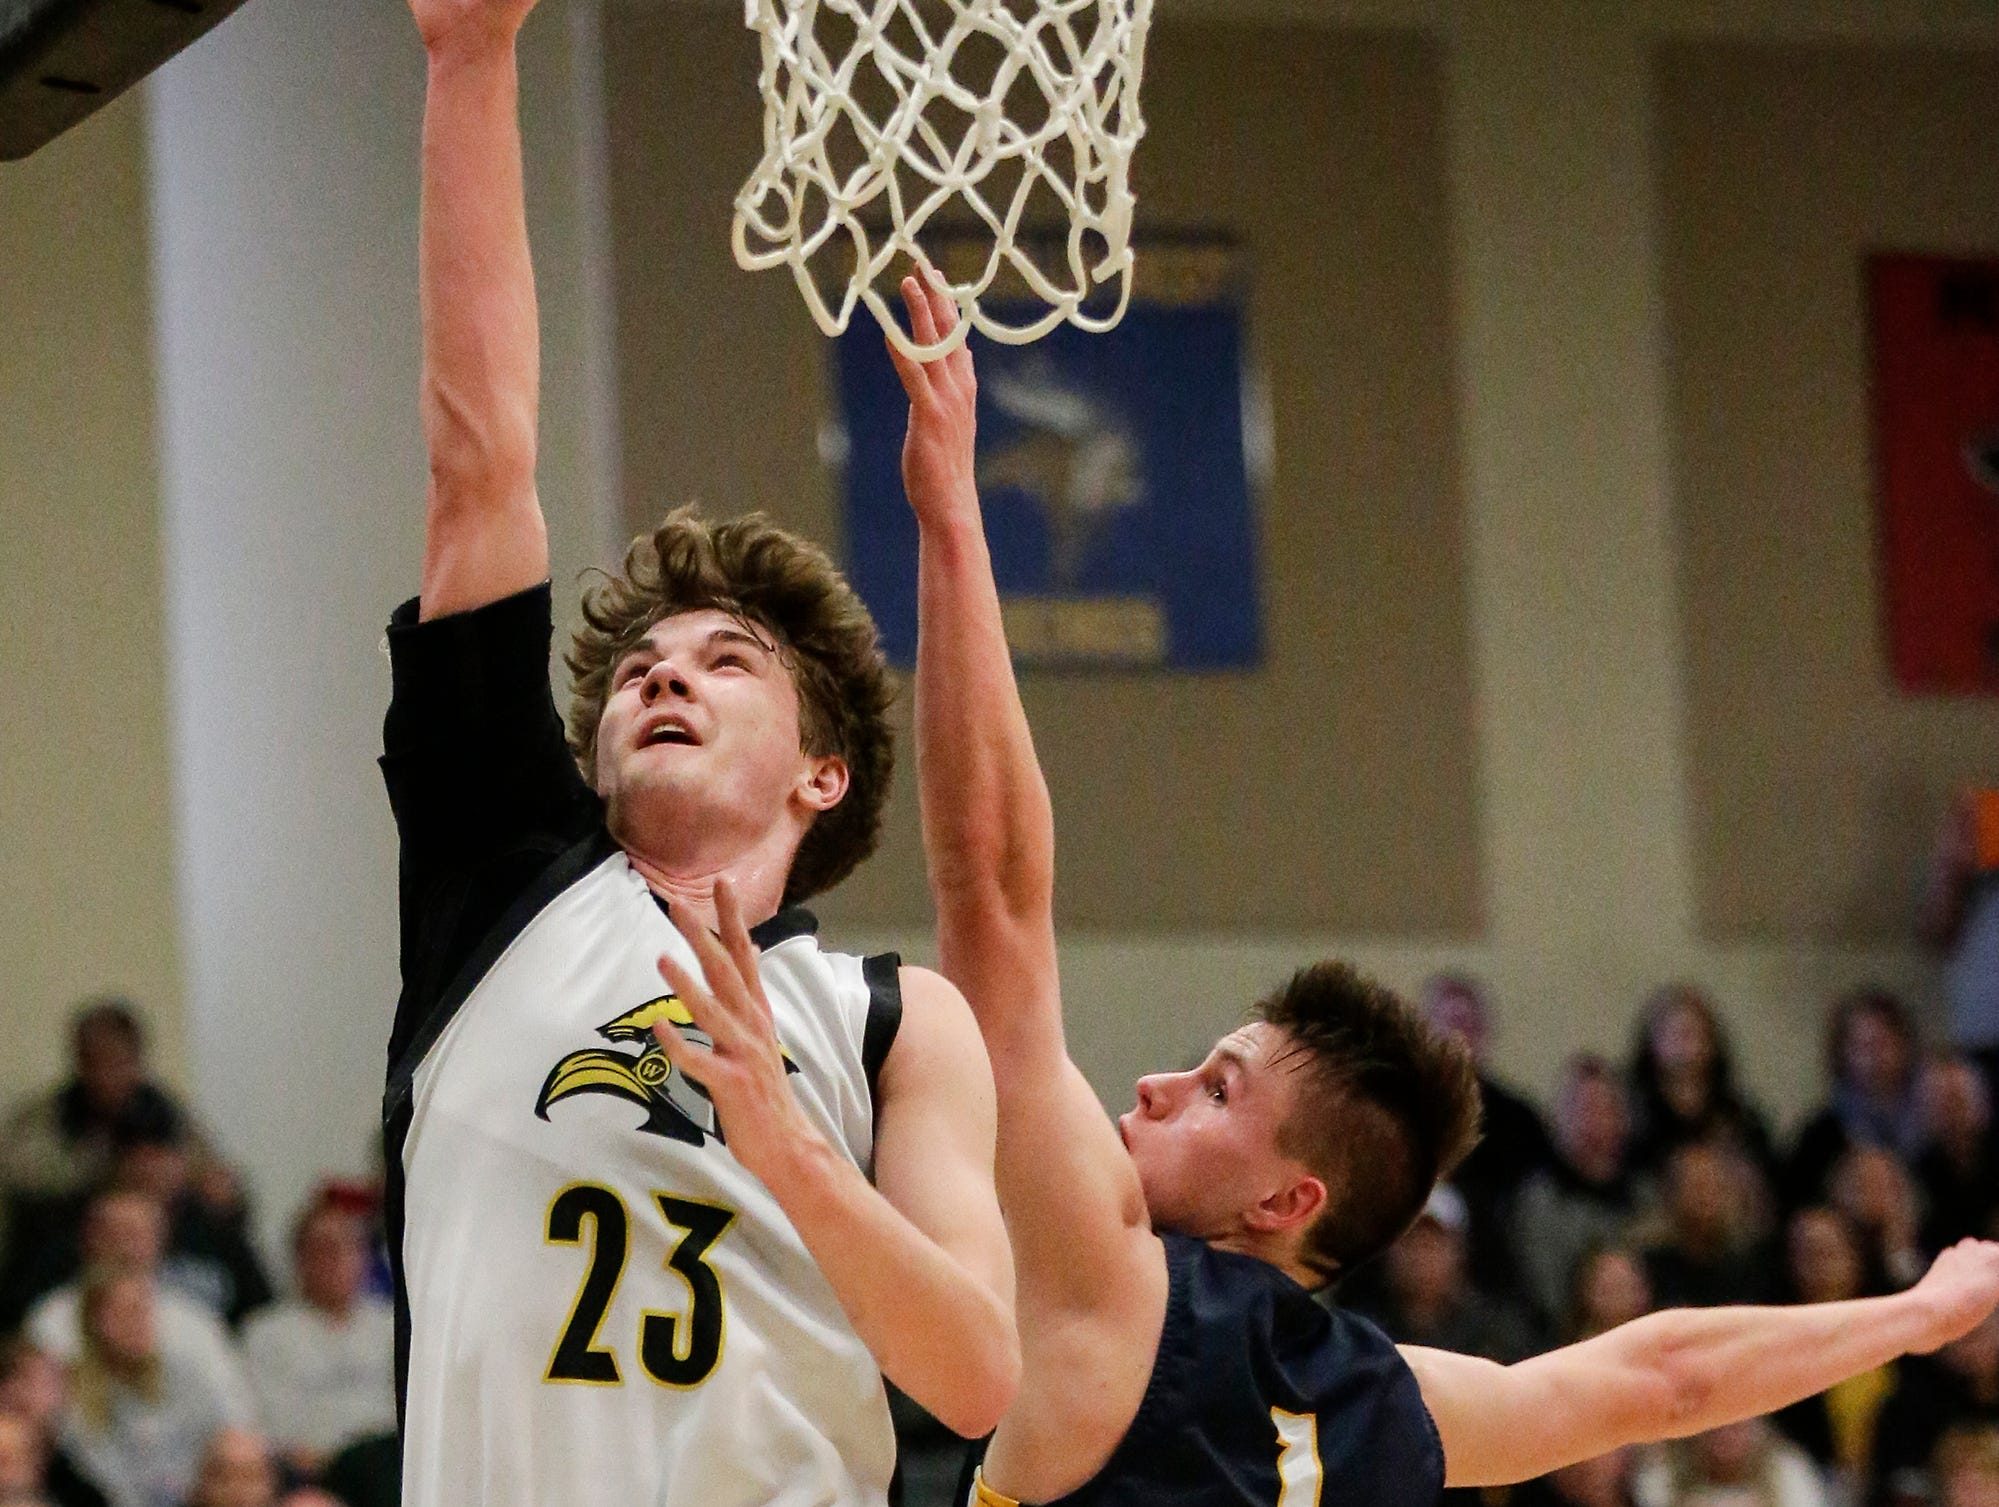 Waupun High School boys basketball's Reece Homan (23) goes up for a basket over Brookfield Academy's Aiden Clarey (1) during their WIAA division 3 sectional final game Saturday, March 9, 2019 in Brown Deer, Wis. Waupun won the game 64-58 and will advance to the state tournament. Doug Raflik/USA TODAY NETWORK-Wisconsin